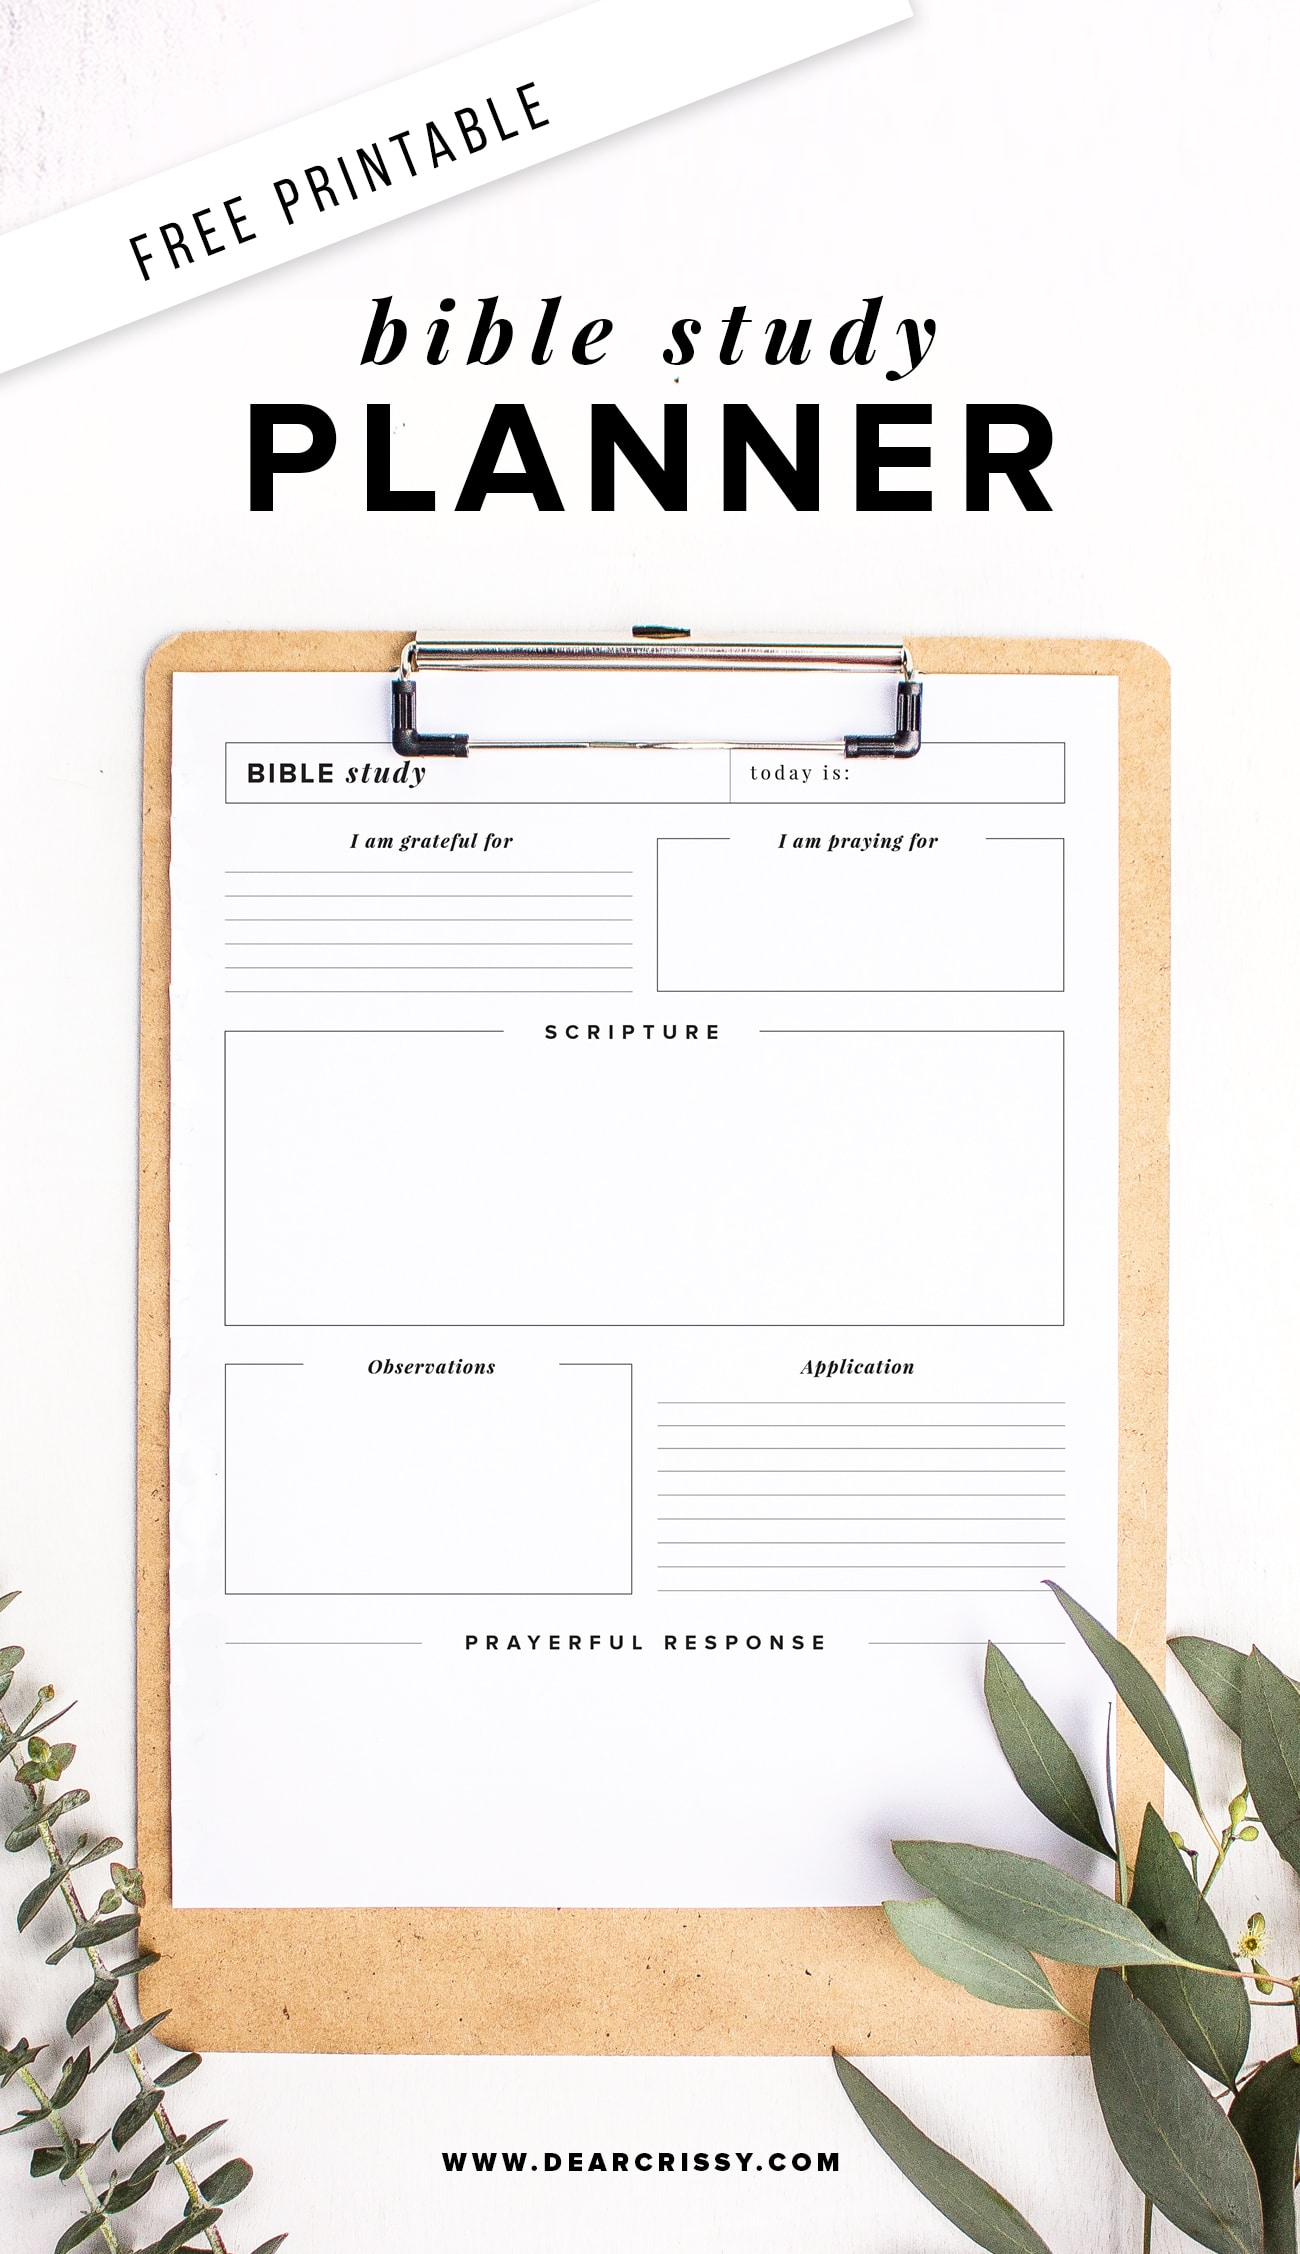 Free Printable Bible Study Planner - Soap Method Bible Study Worksheet! | Free Printable Bible Study Worksheets